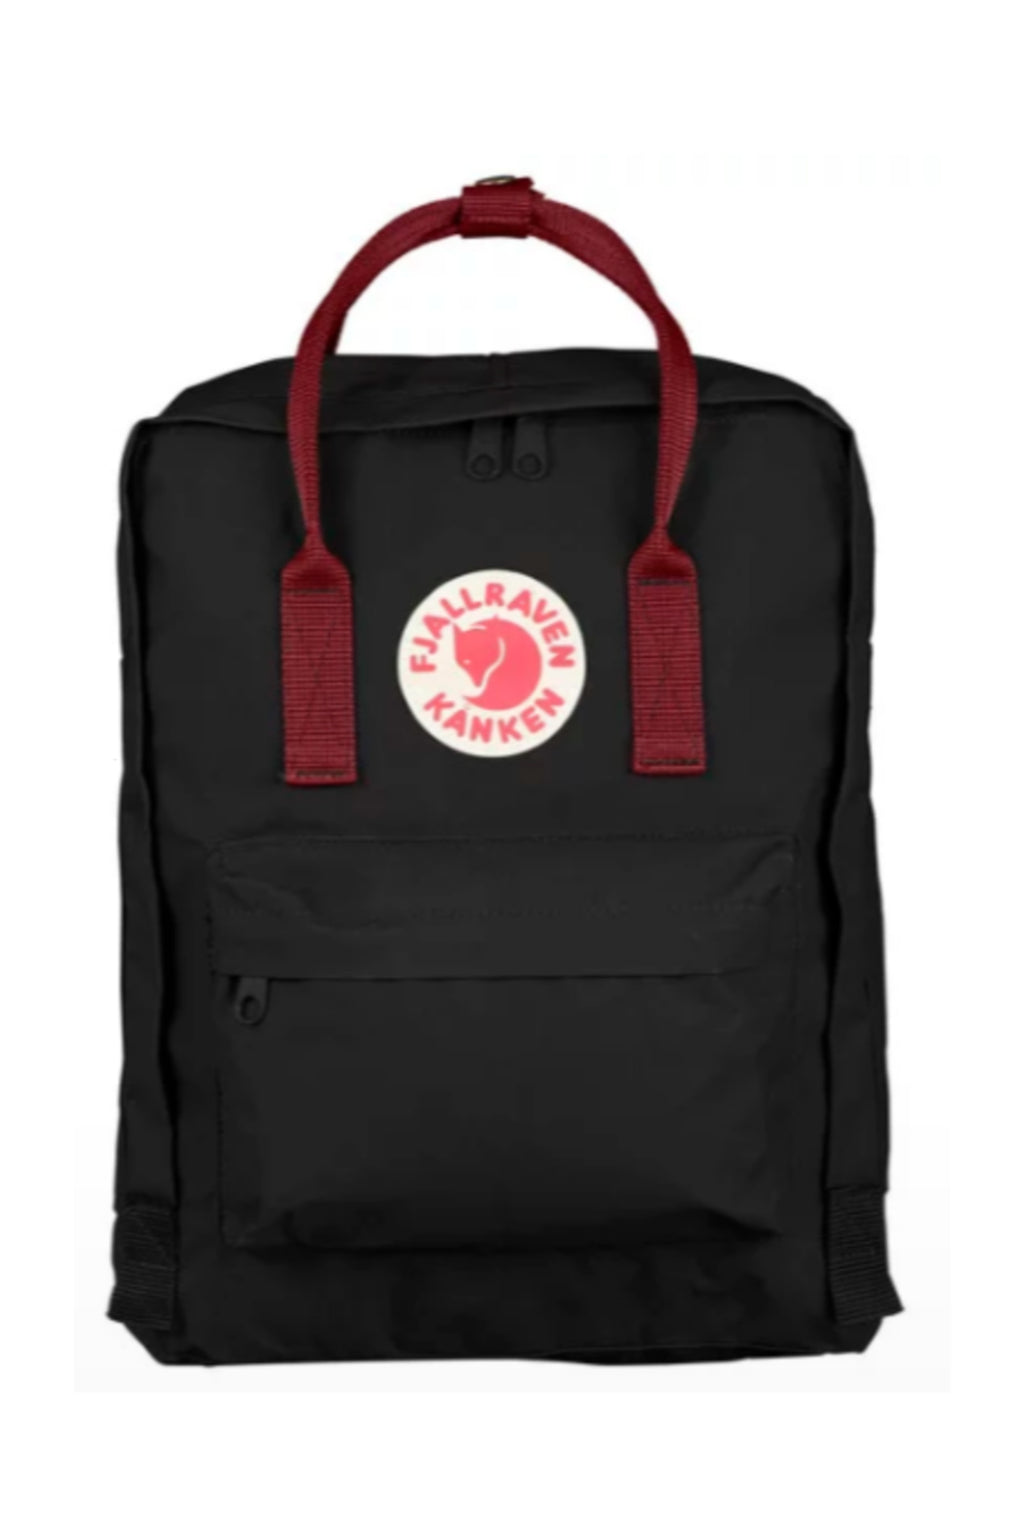 Fjällräven Kånken Backpack in Black/Ox Red